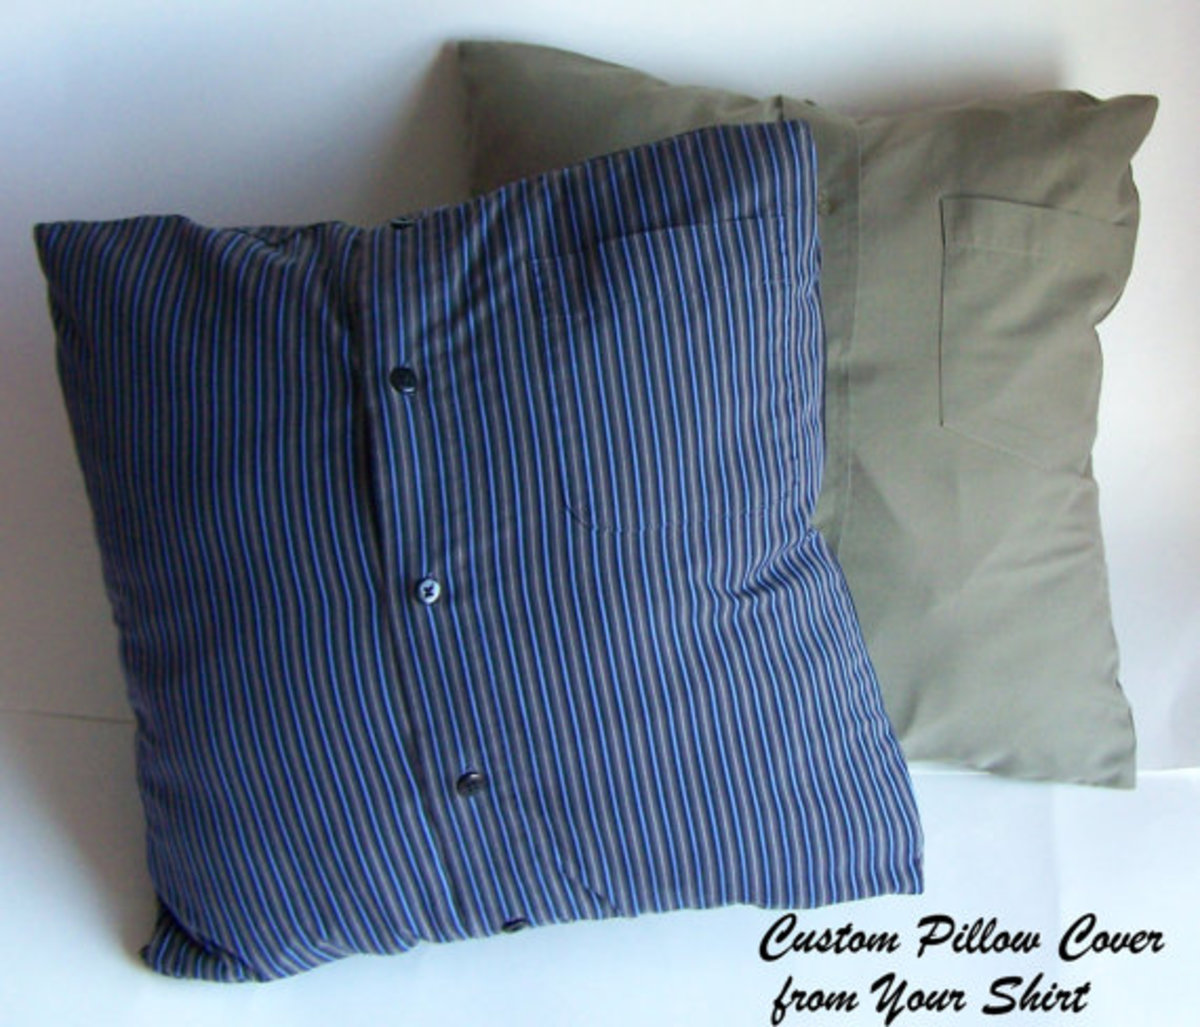 Memory Pillow Made from Upcycled Men's Shirt